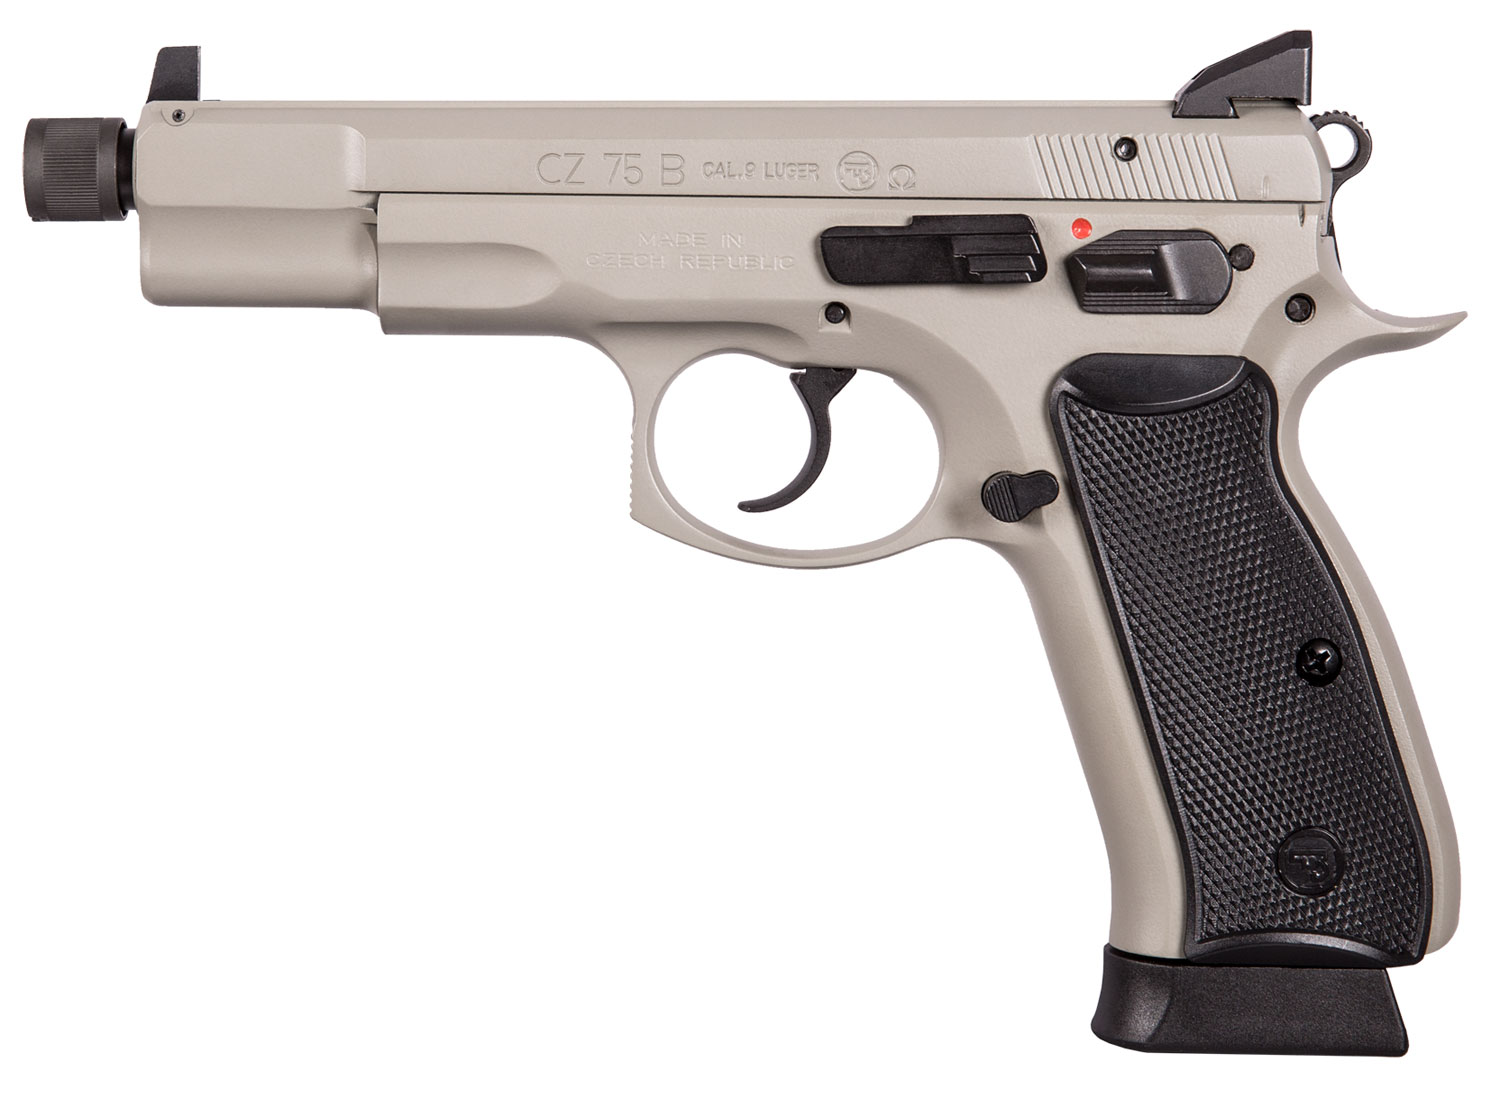 CZ 91235 CZ 75 Omega Urban Grey Suppressor Ready Single/Double 9mm 5.2